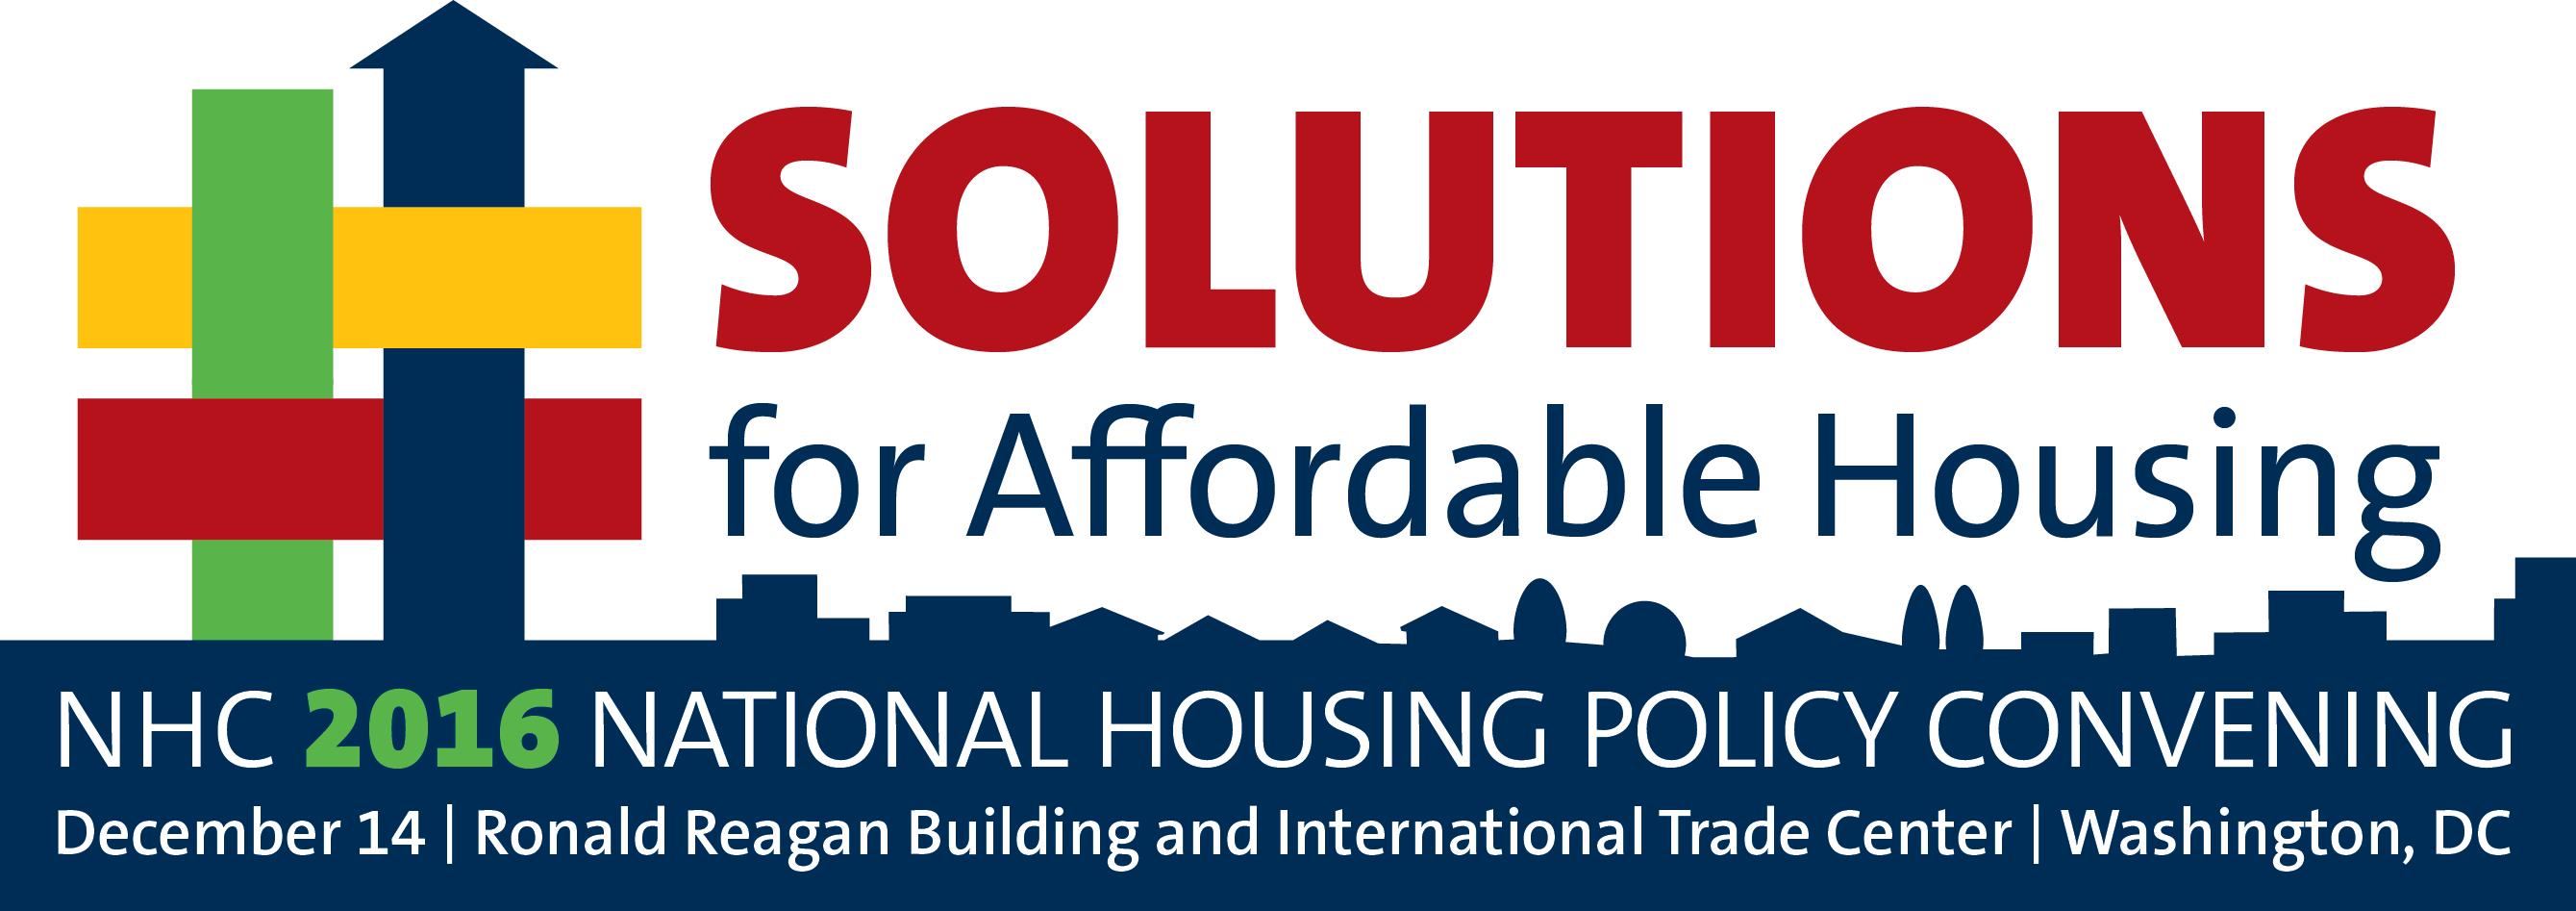 NHC 2016 Solutions for  Affordable Housing - National Housing Policy Convening